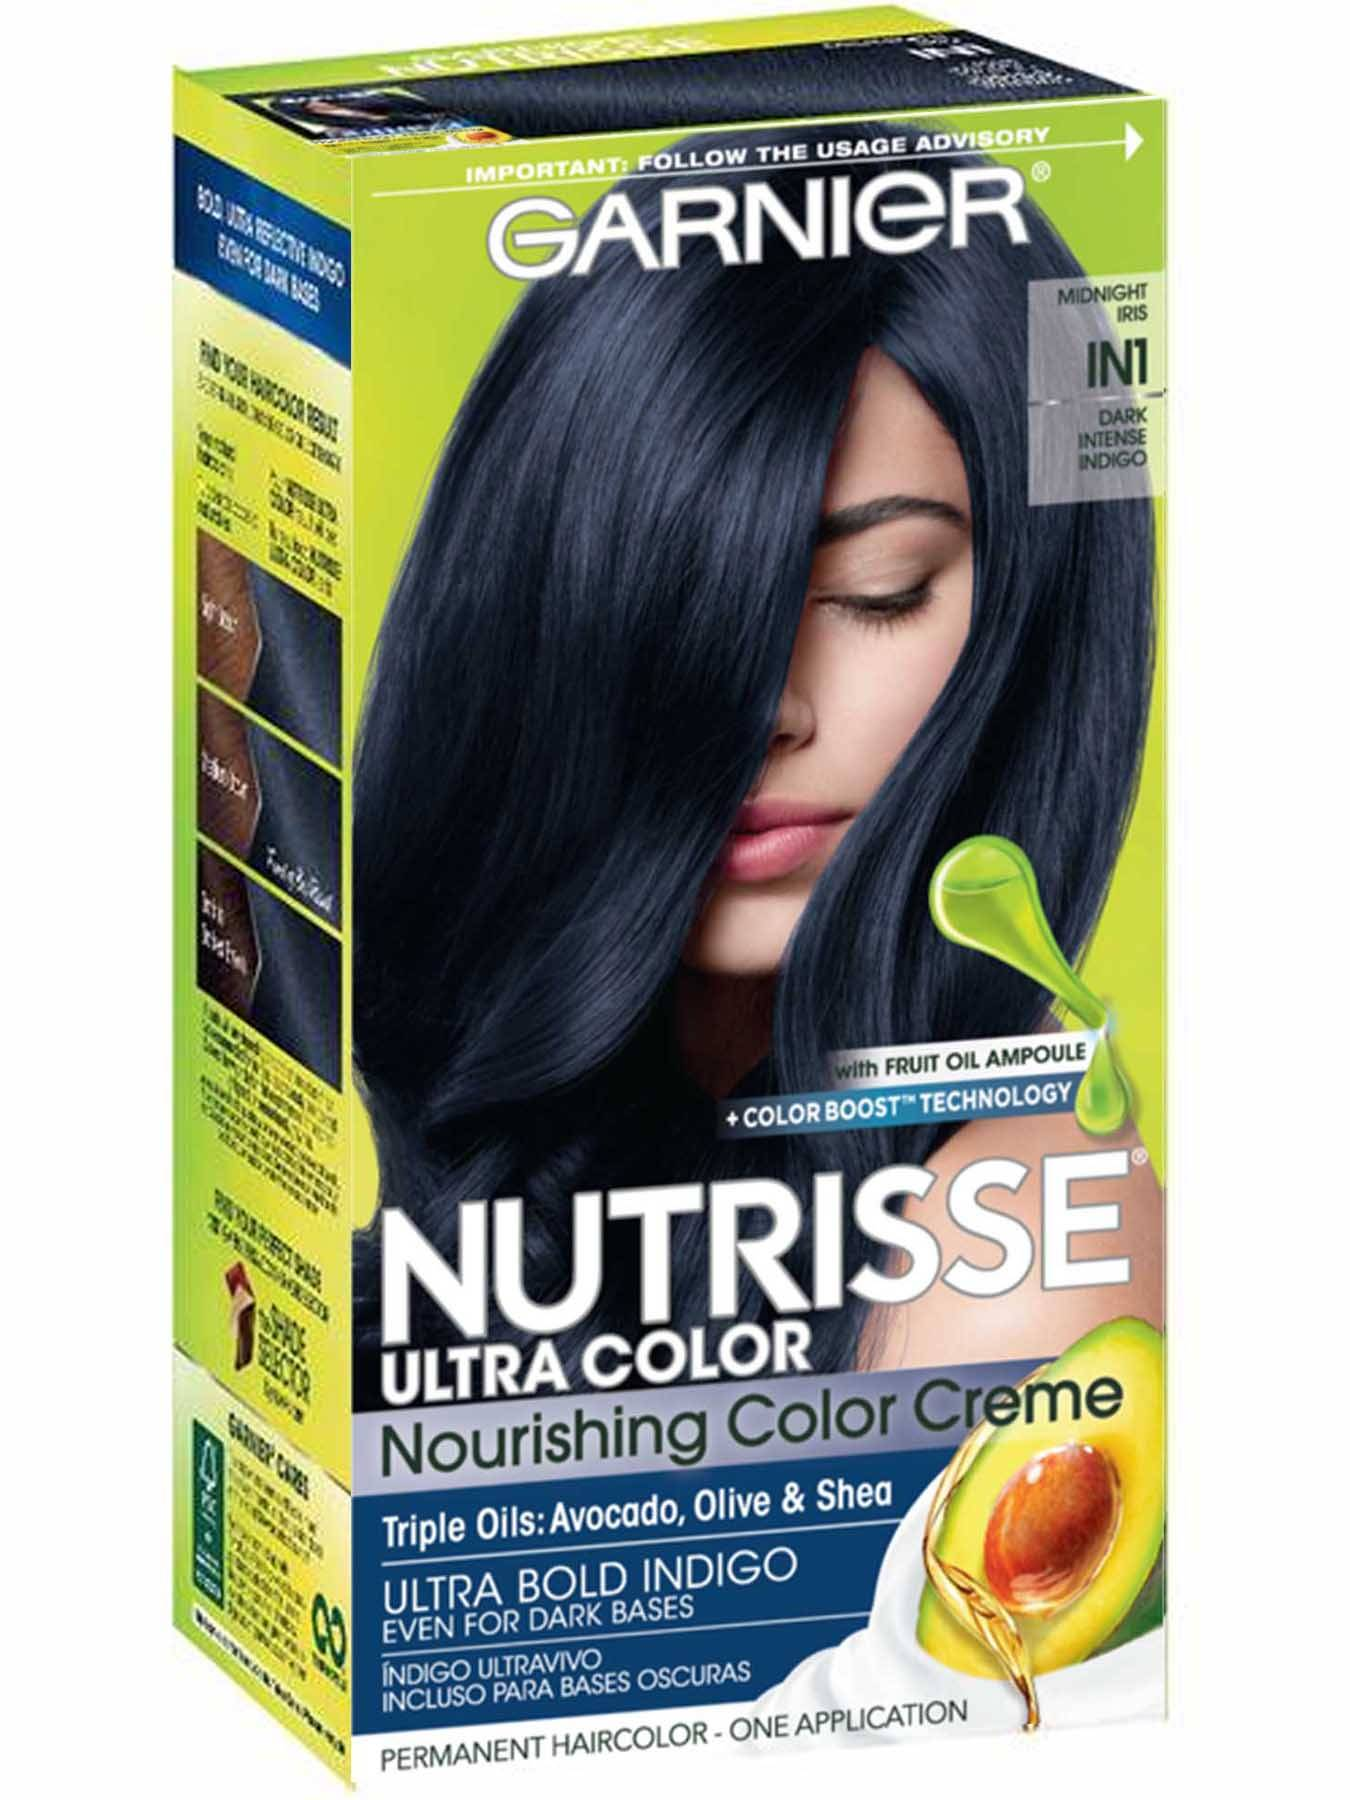 Nutrisse Ultra Color - Dark Intense Indigo Hair Color - Garnier